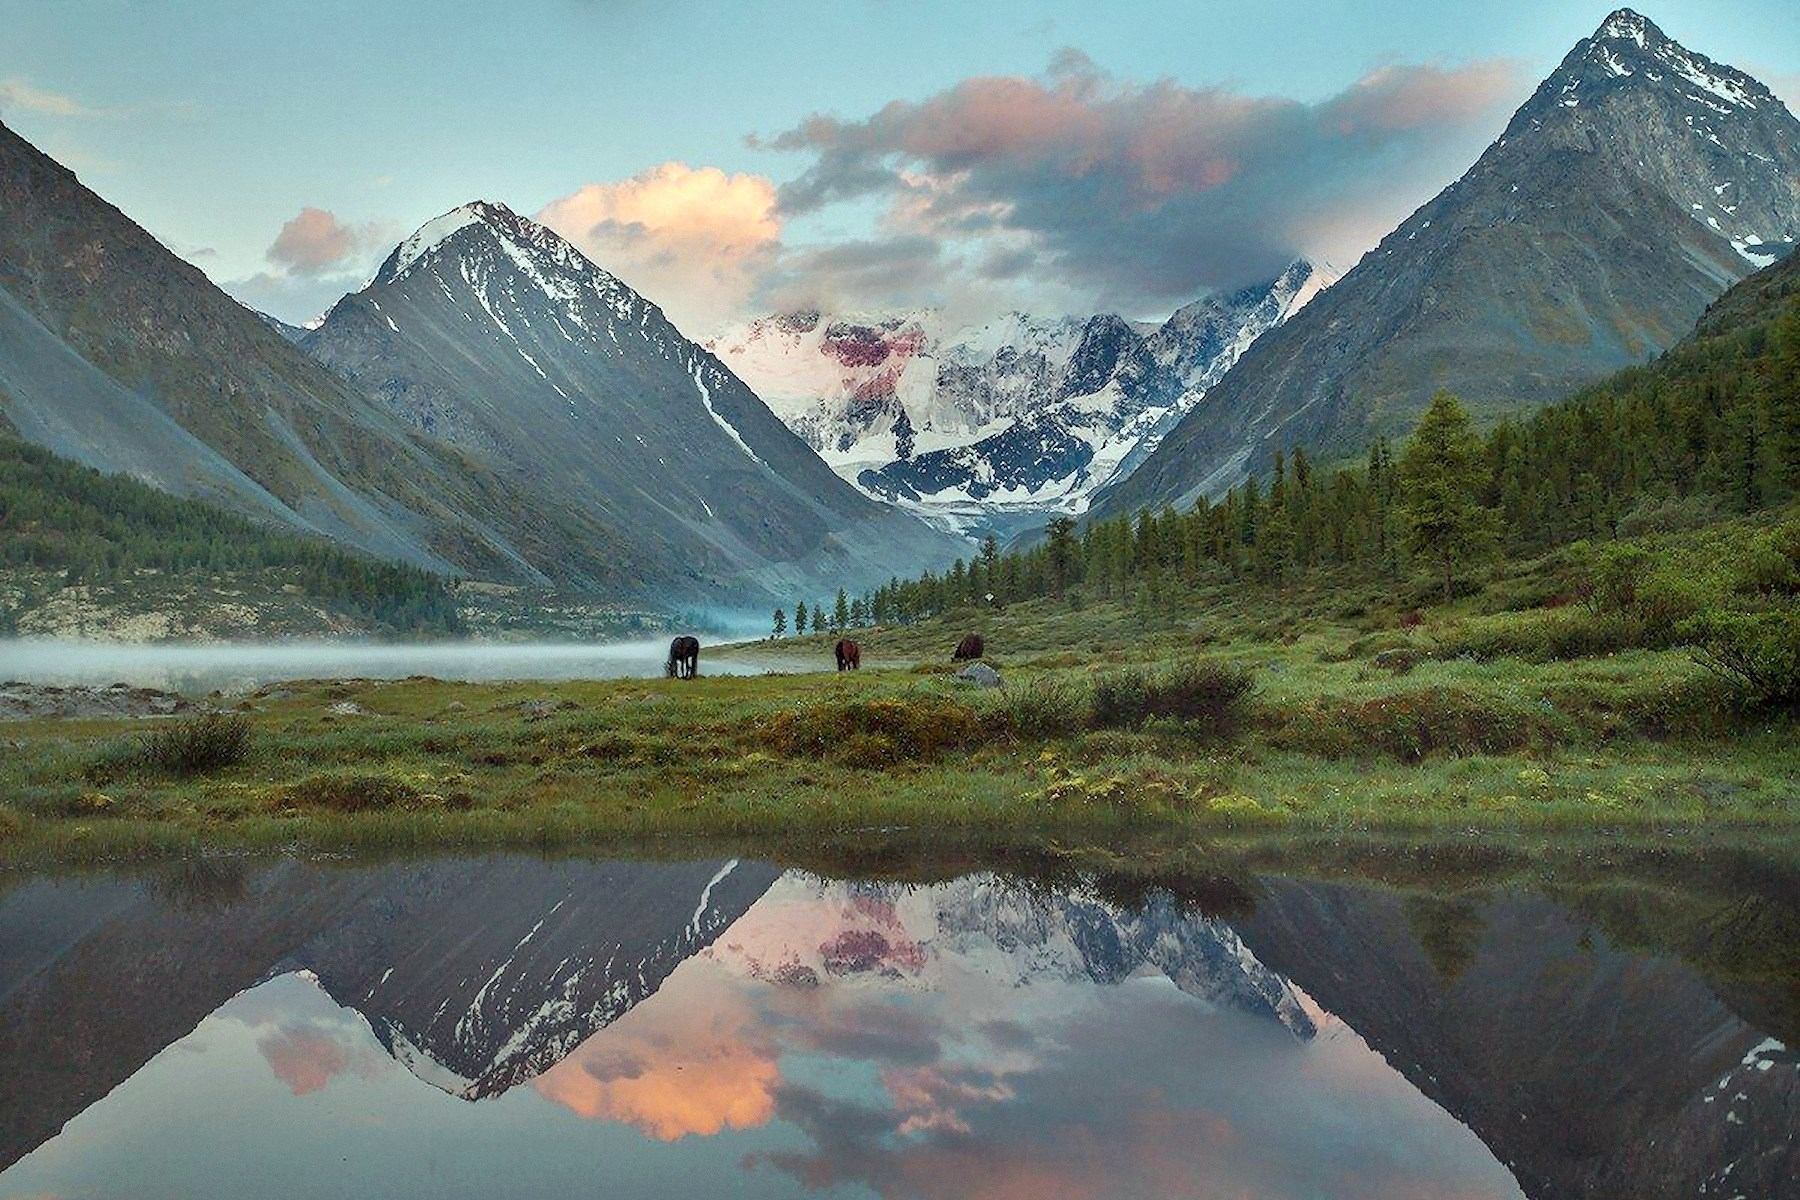 00 Valentina Kobzeva. Akkem Lake by Mount Belukha in the Altai Mountains. 2015